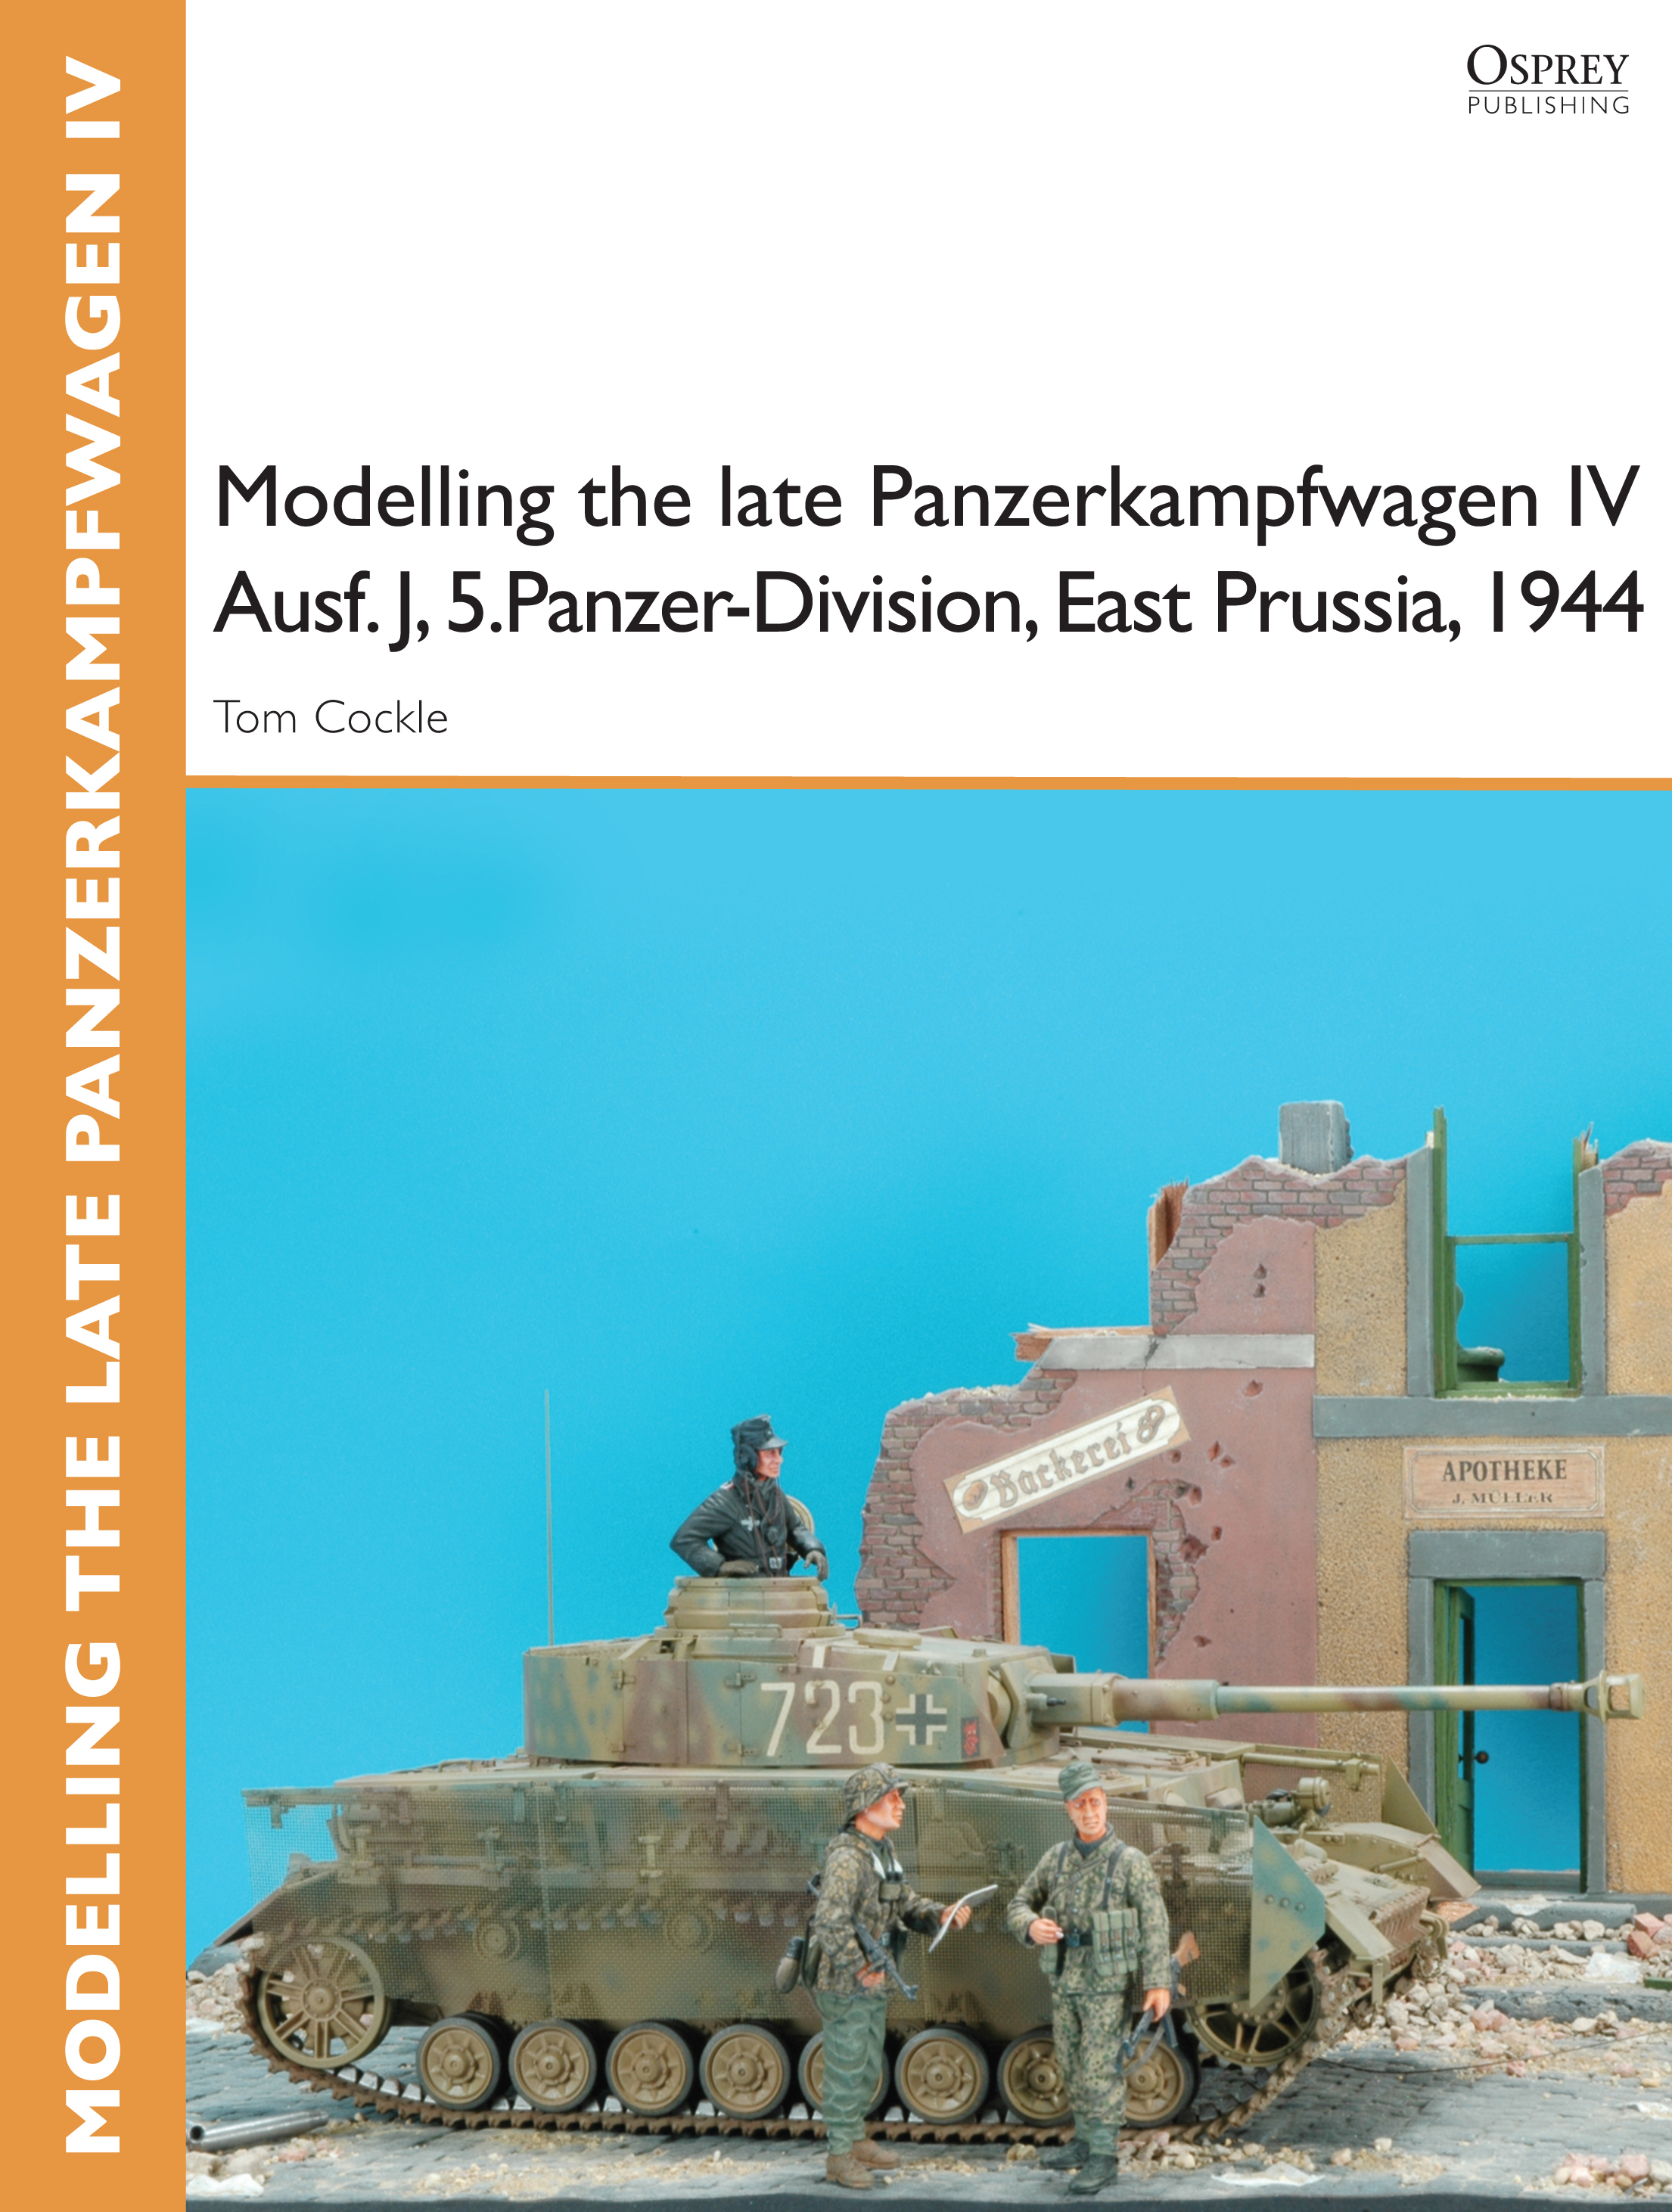 Modelling the late Panzerkampfwagen IV Ausf. J,  5.Panzer-Division,  East Prussia,  1944